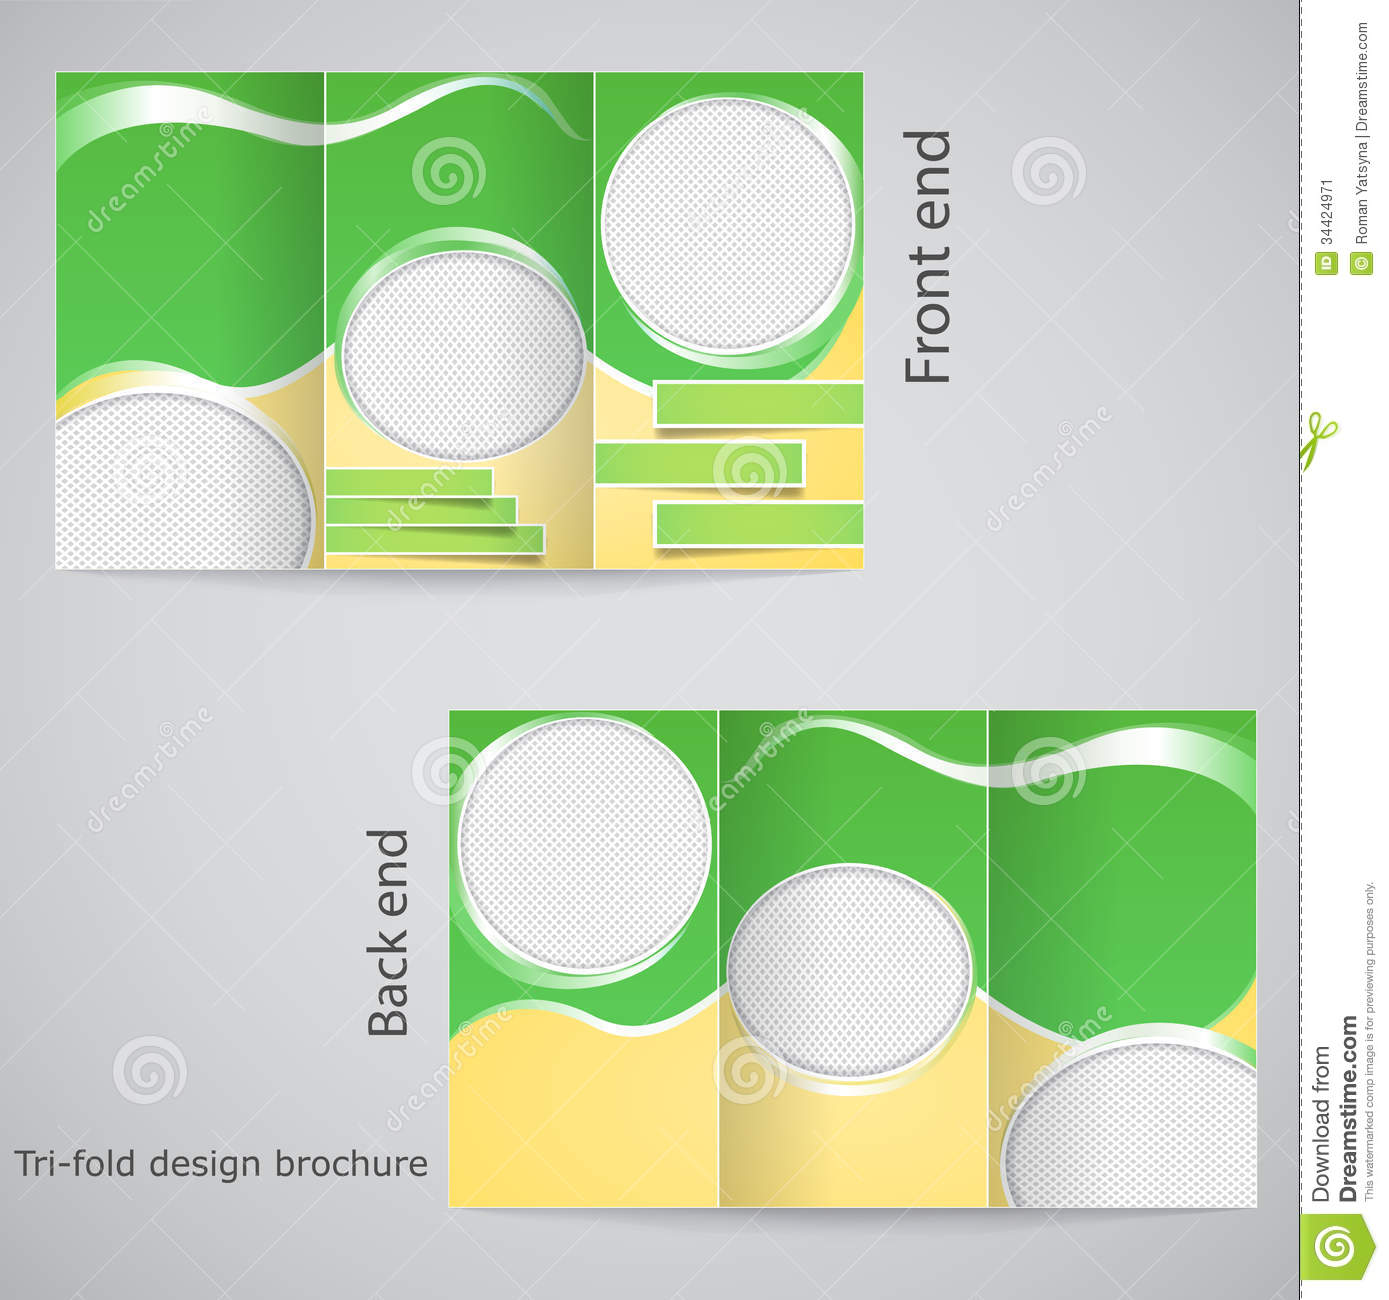 Tri fold brochure design stock vector illustration of for Free tri fold brochure template download